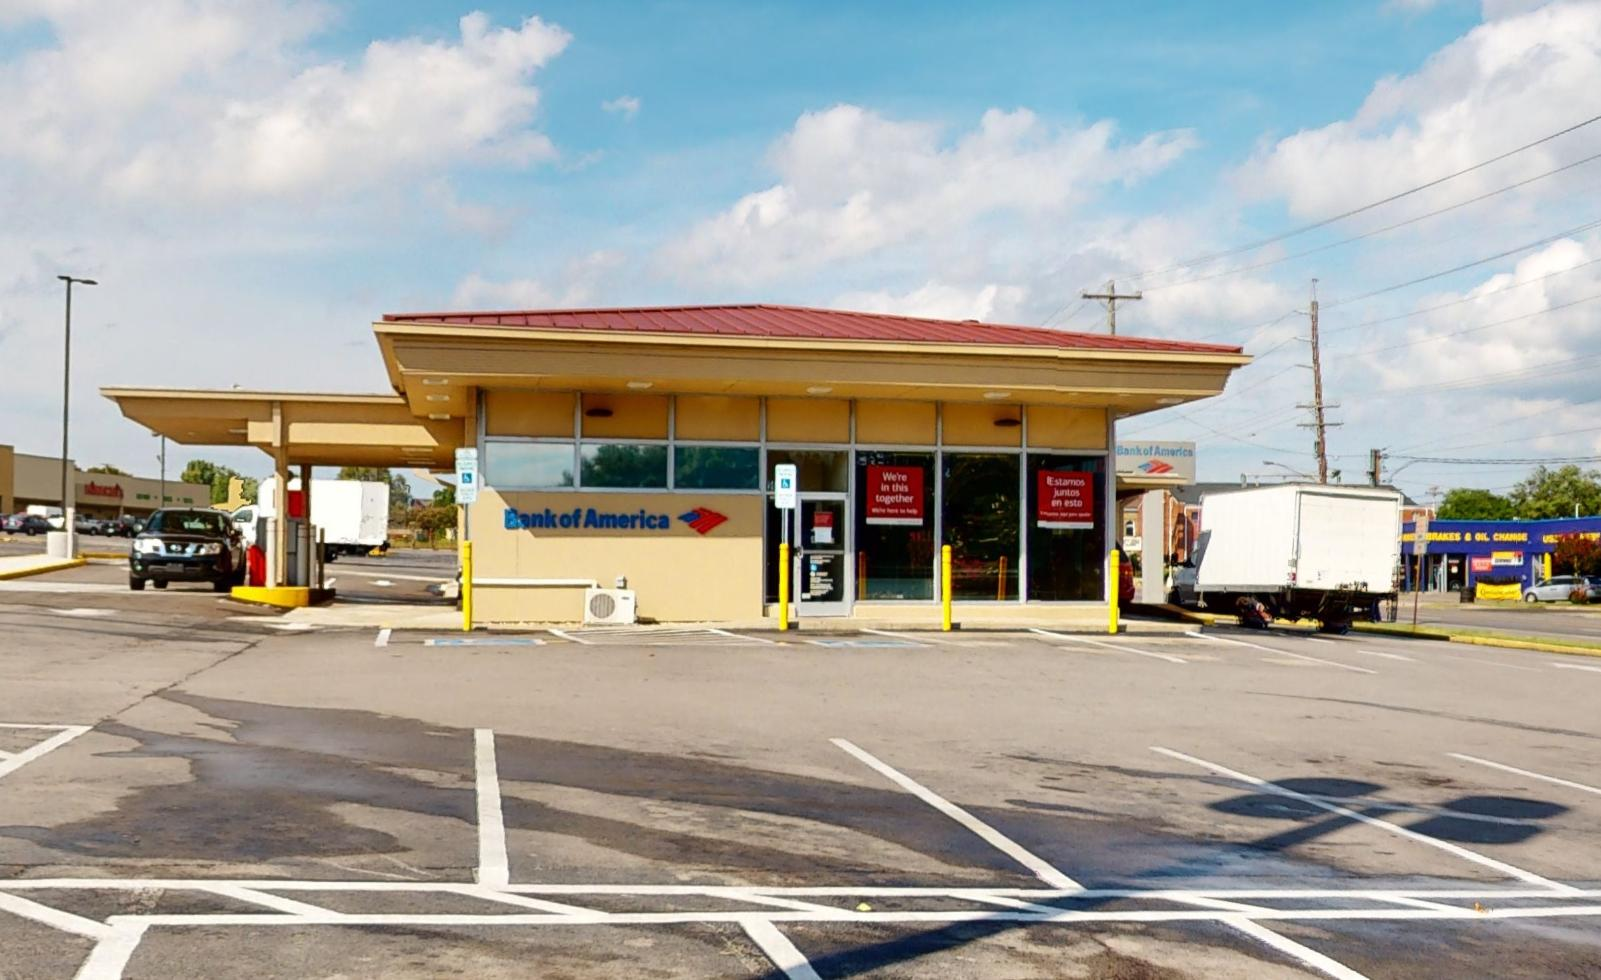 Bank of America financial center with drive-thru ATM and teller   969 Gallatin Pike S, Nashville, TN 37115